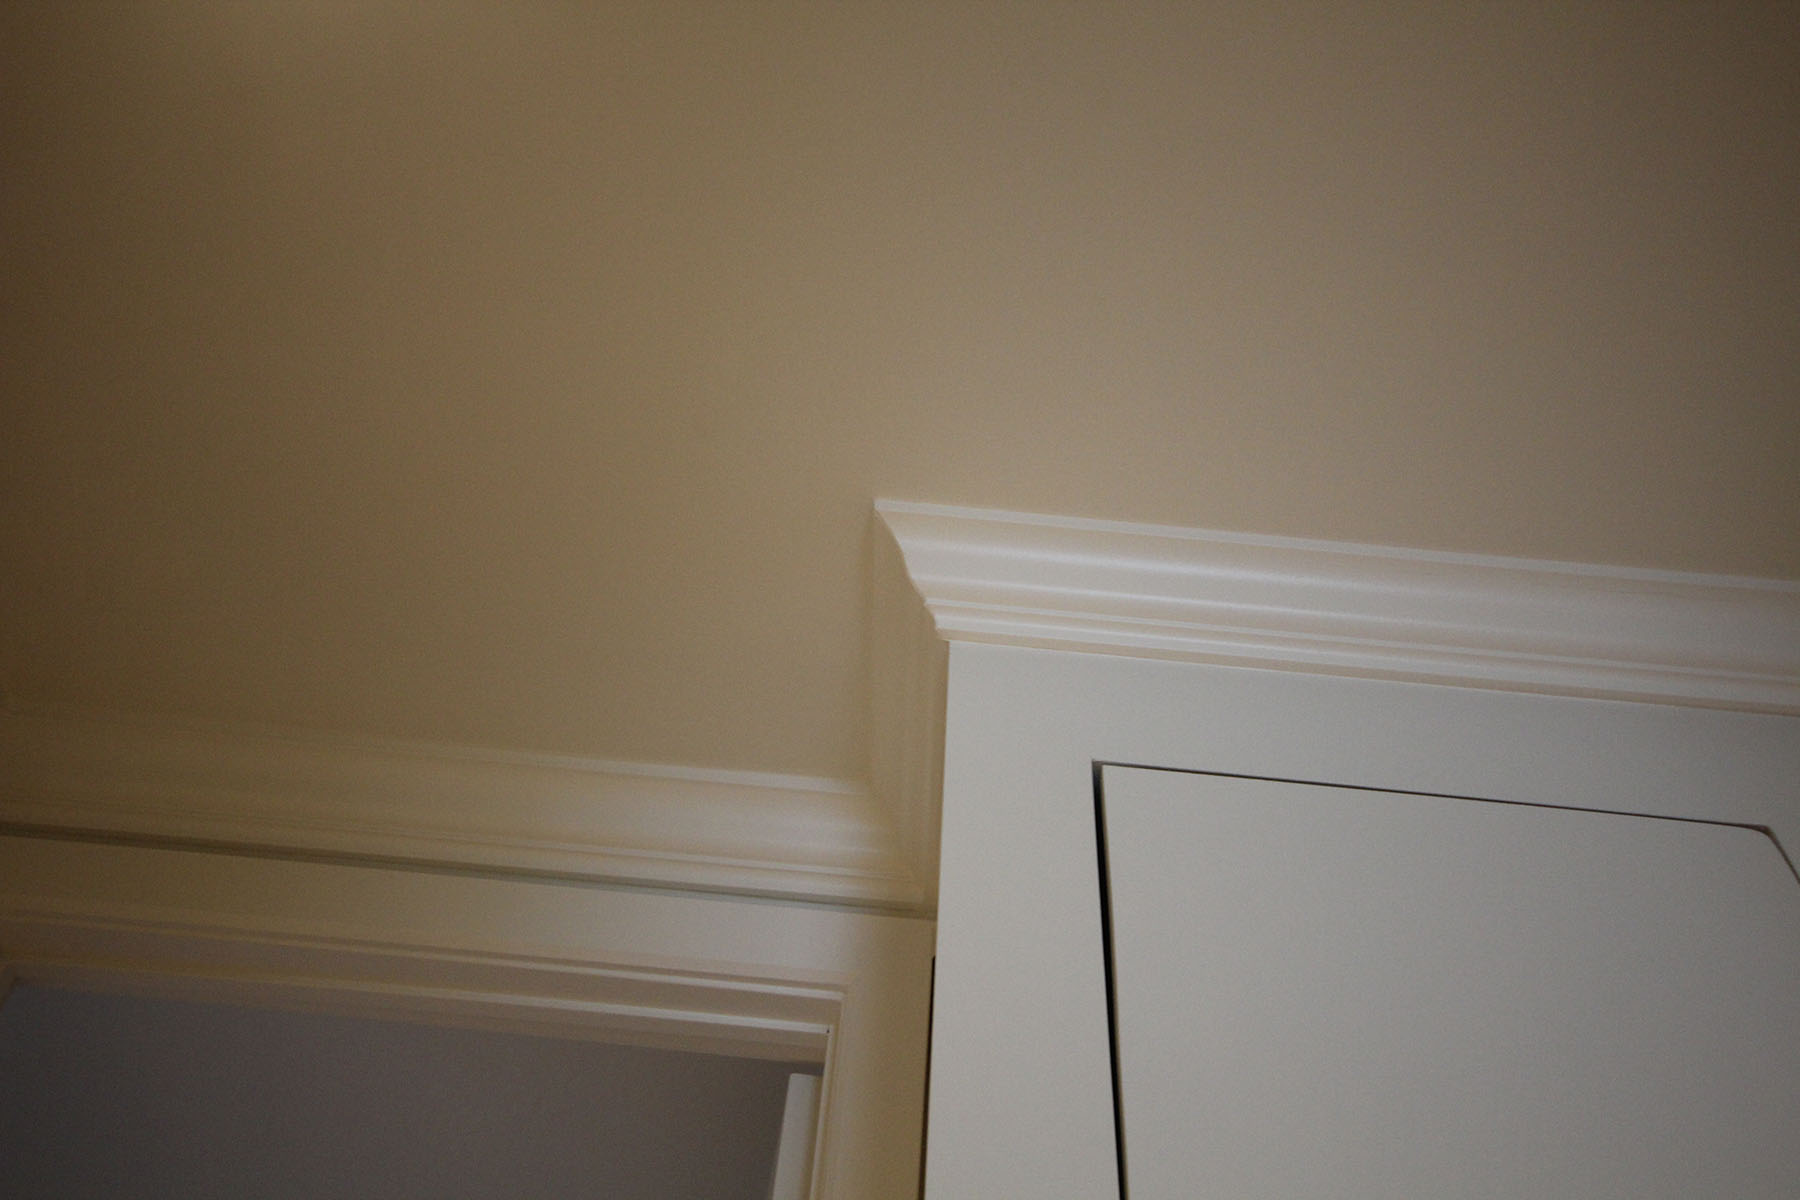 crown mouldings installation services and interior paintain services, baseboard mouldings and quart de rond.